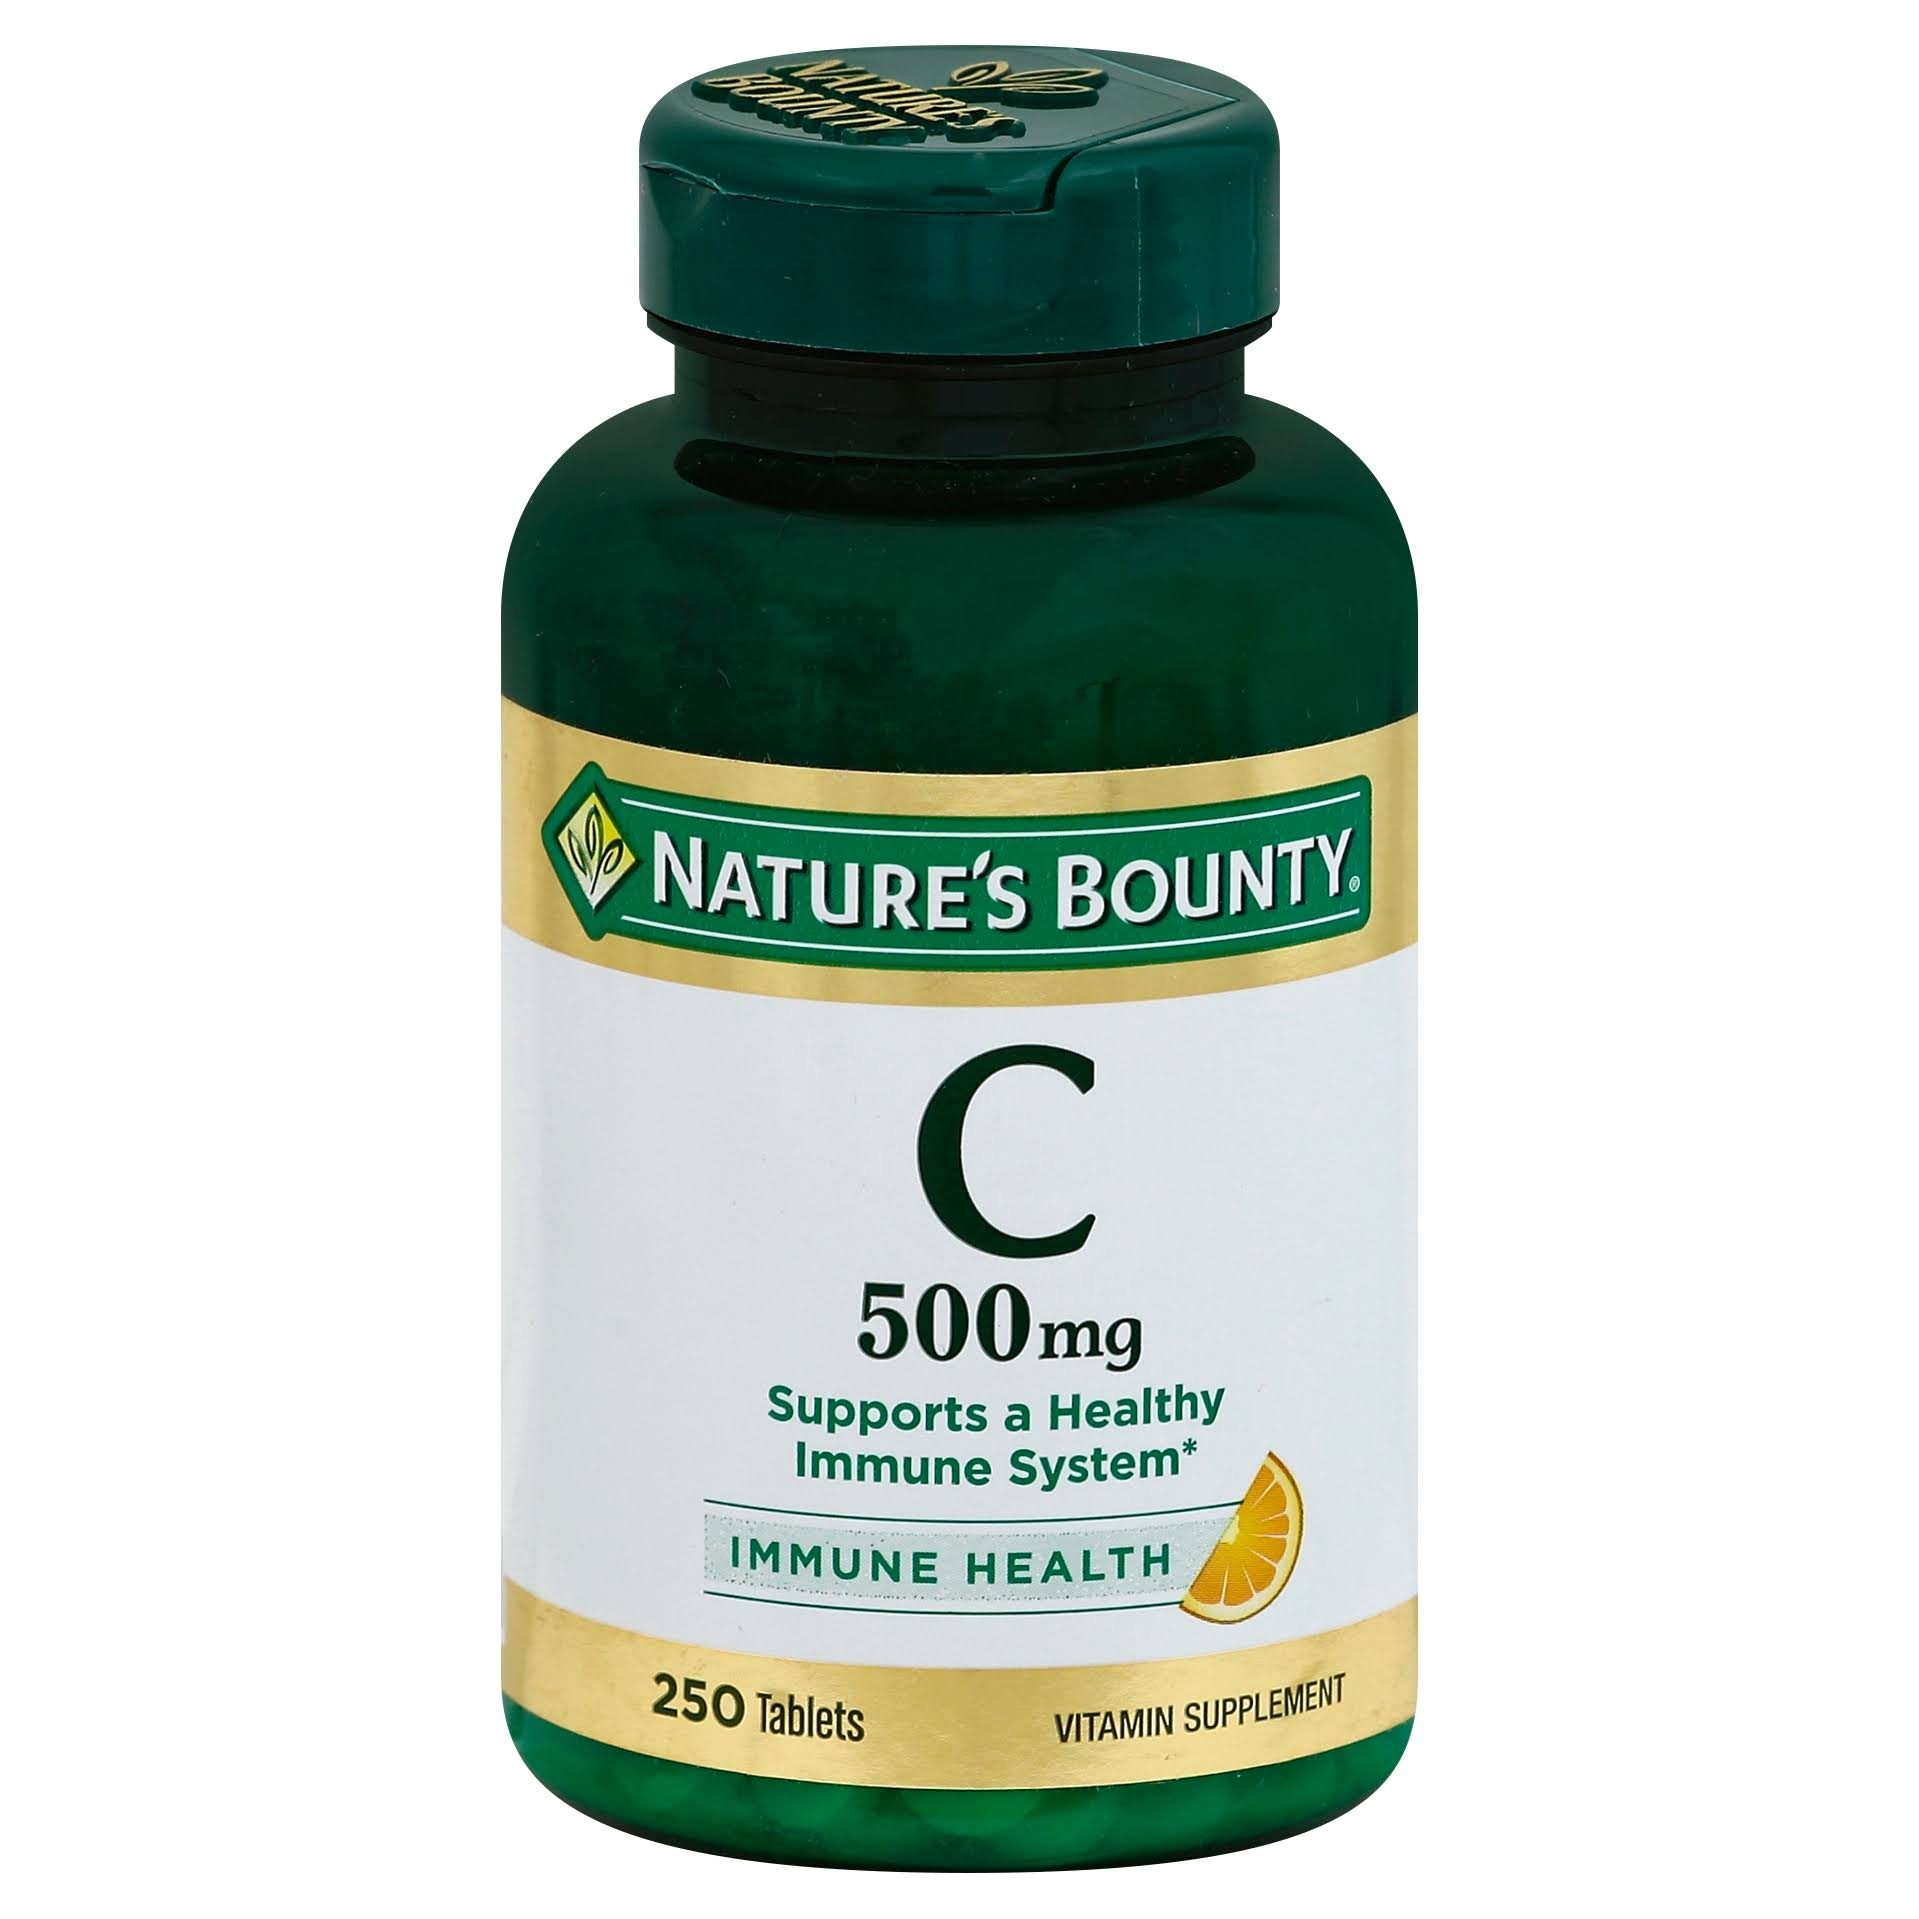 Nature's Bounty Vitamin-C 500mg Dietary Supplement - 250 Tablets